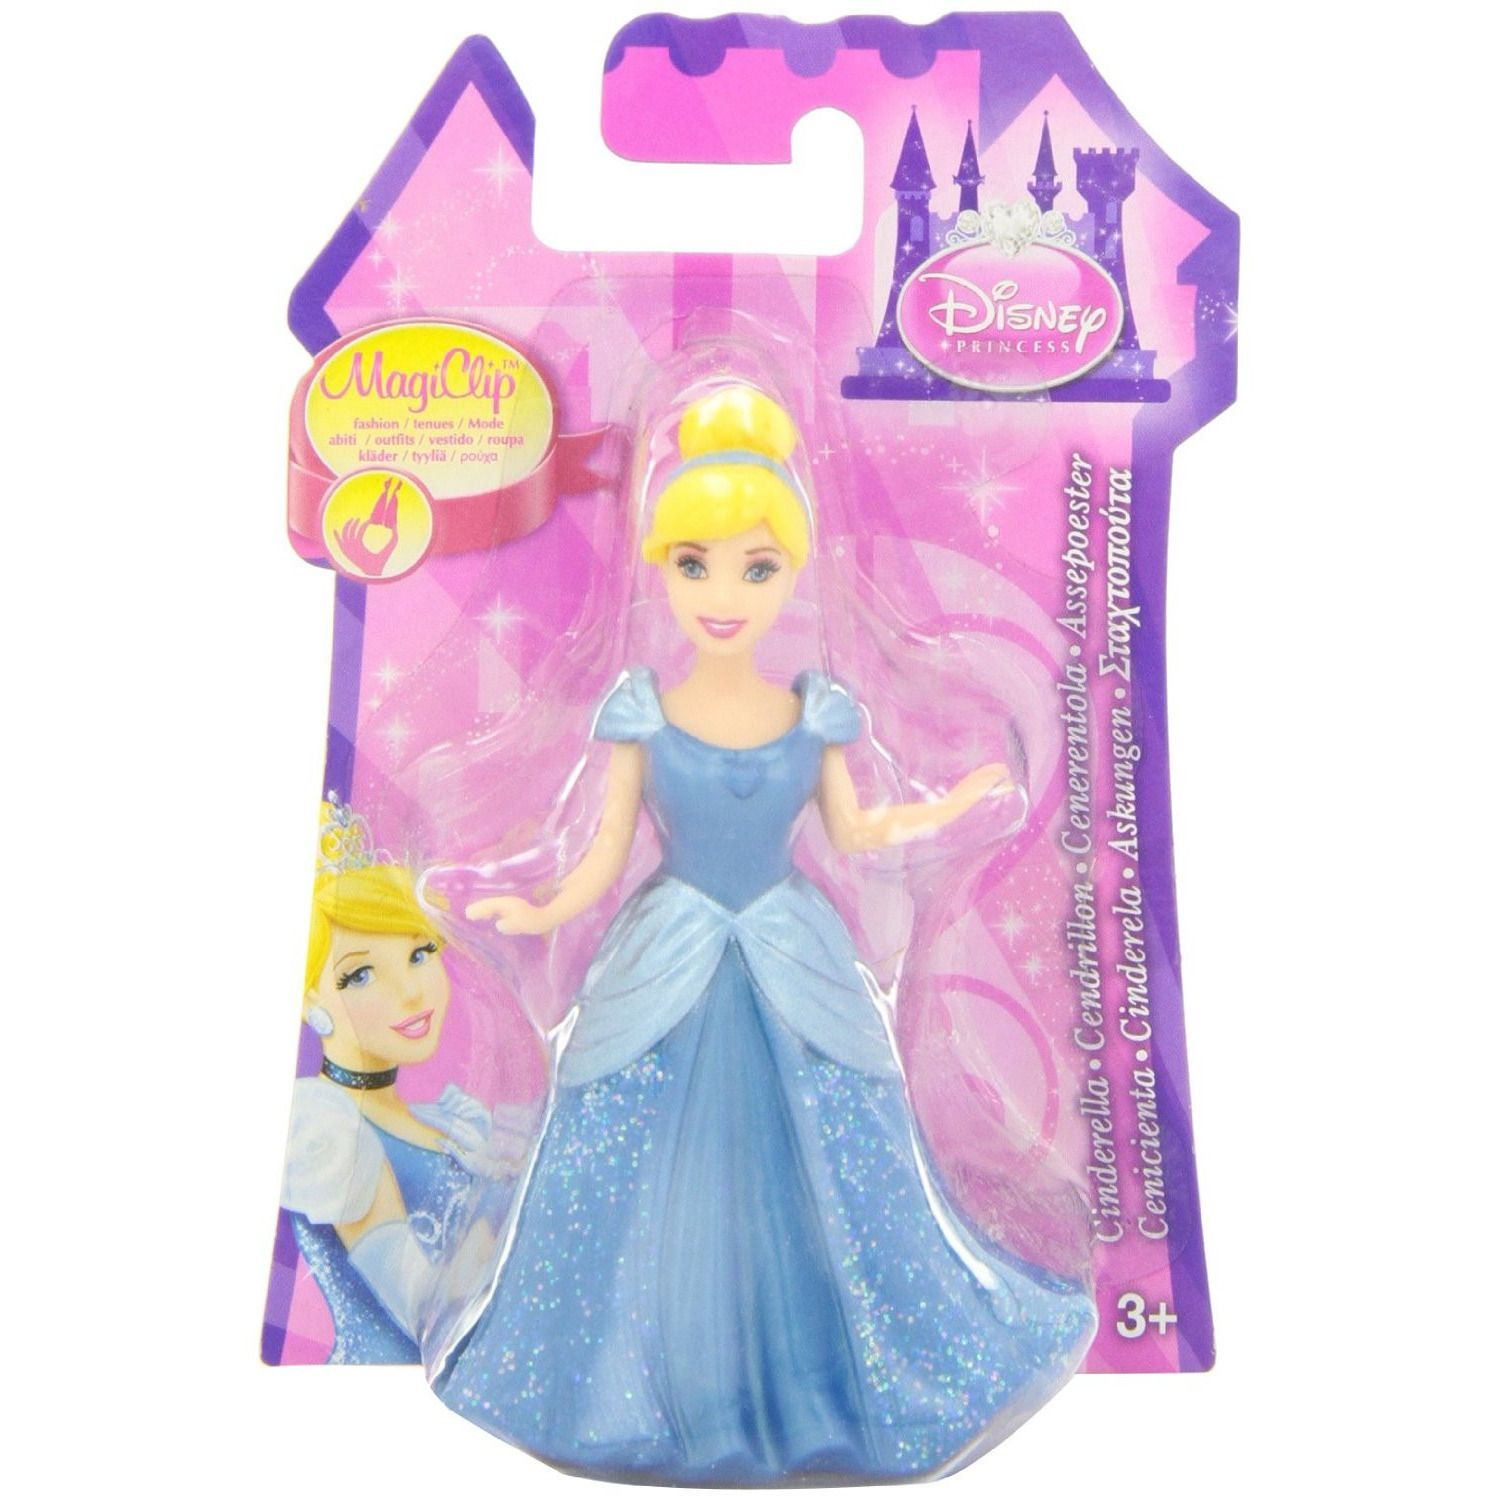 Disney Princess Cinderella Doll Uncanny!